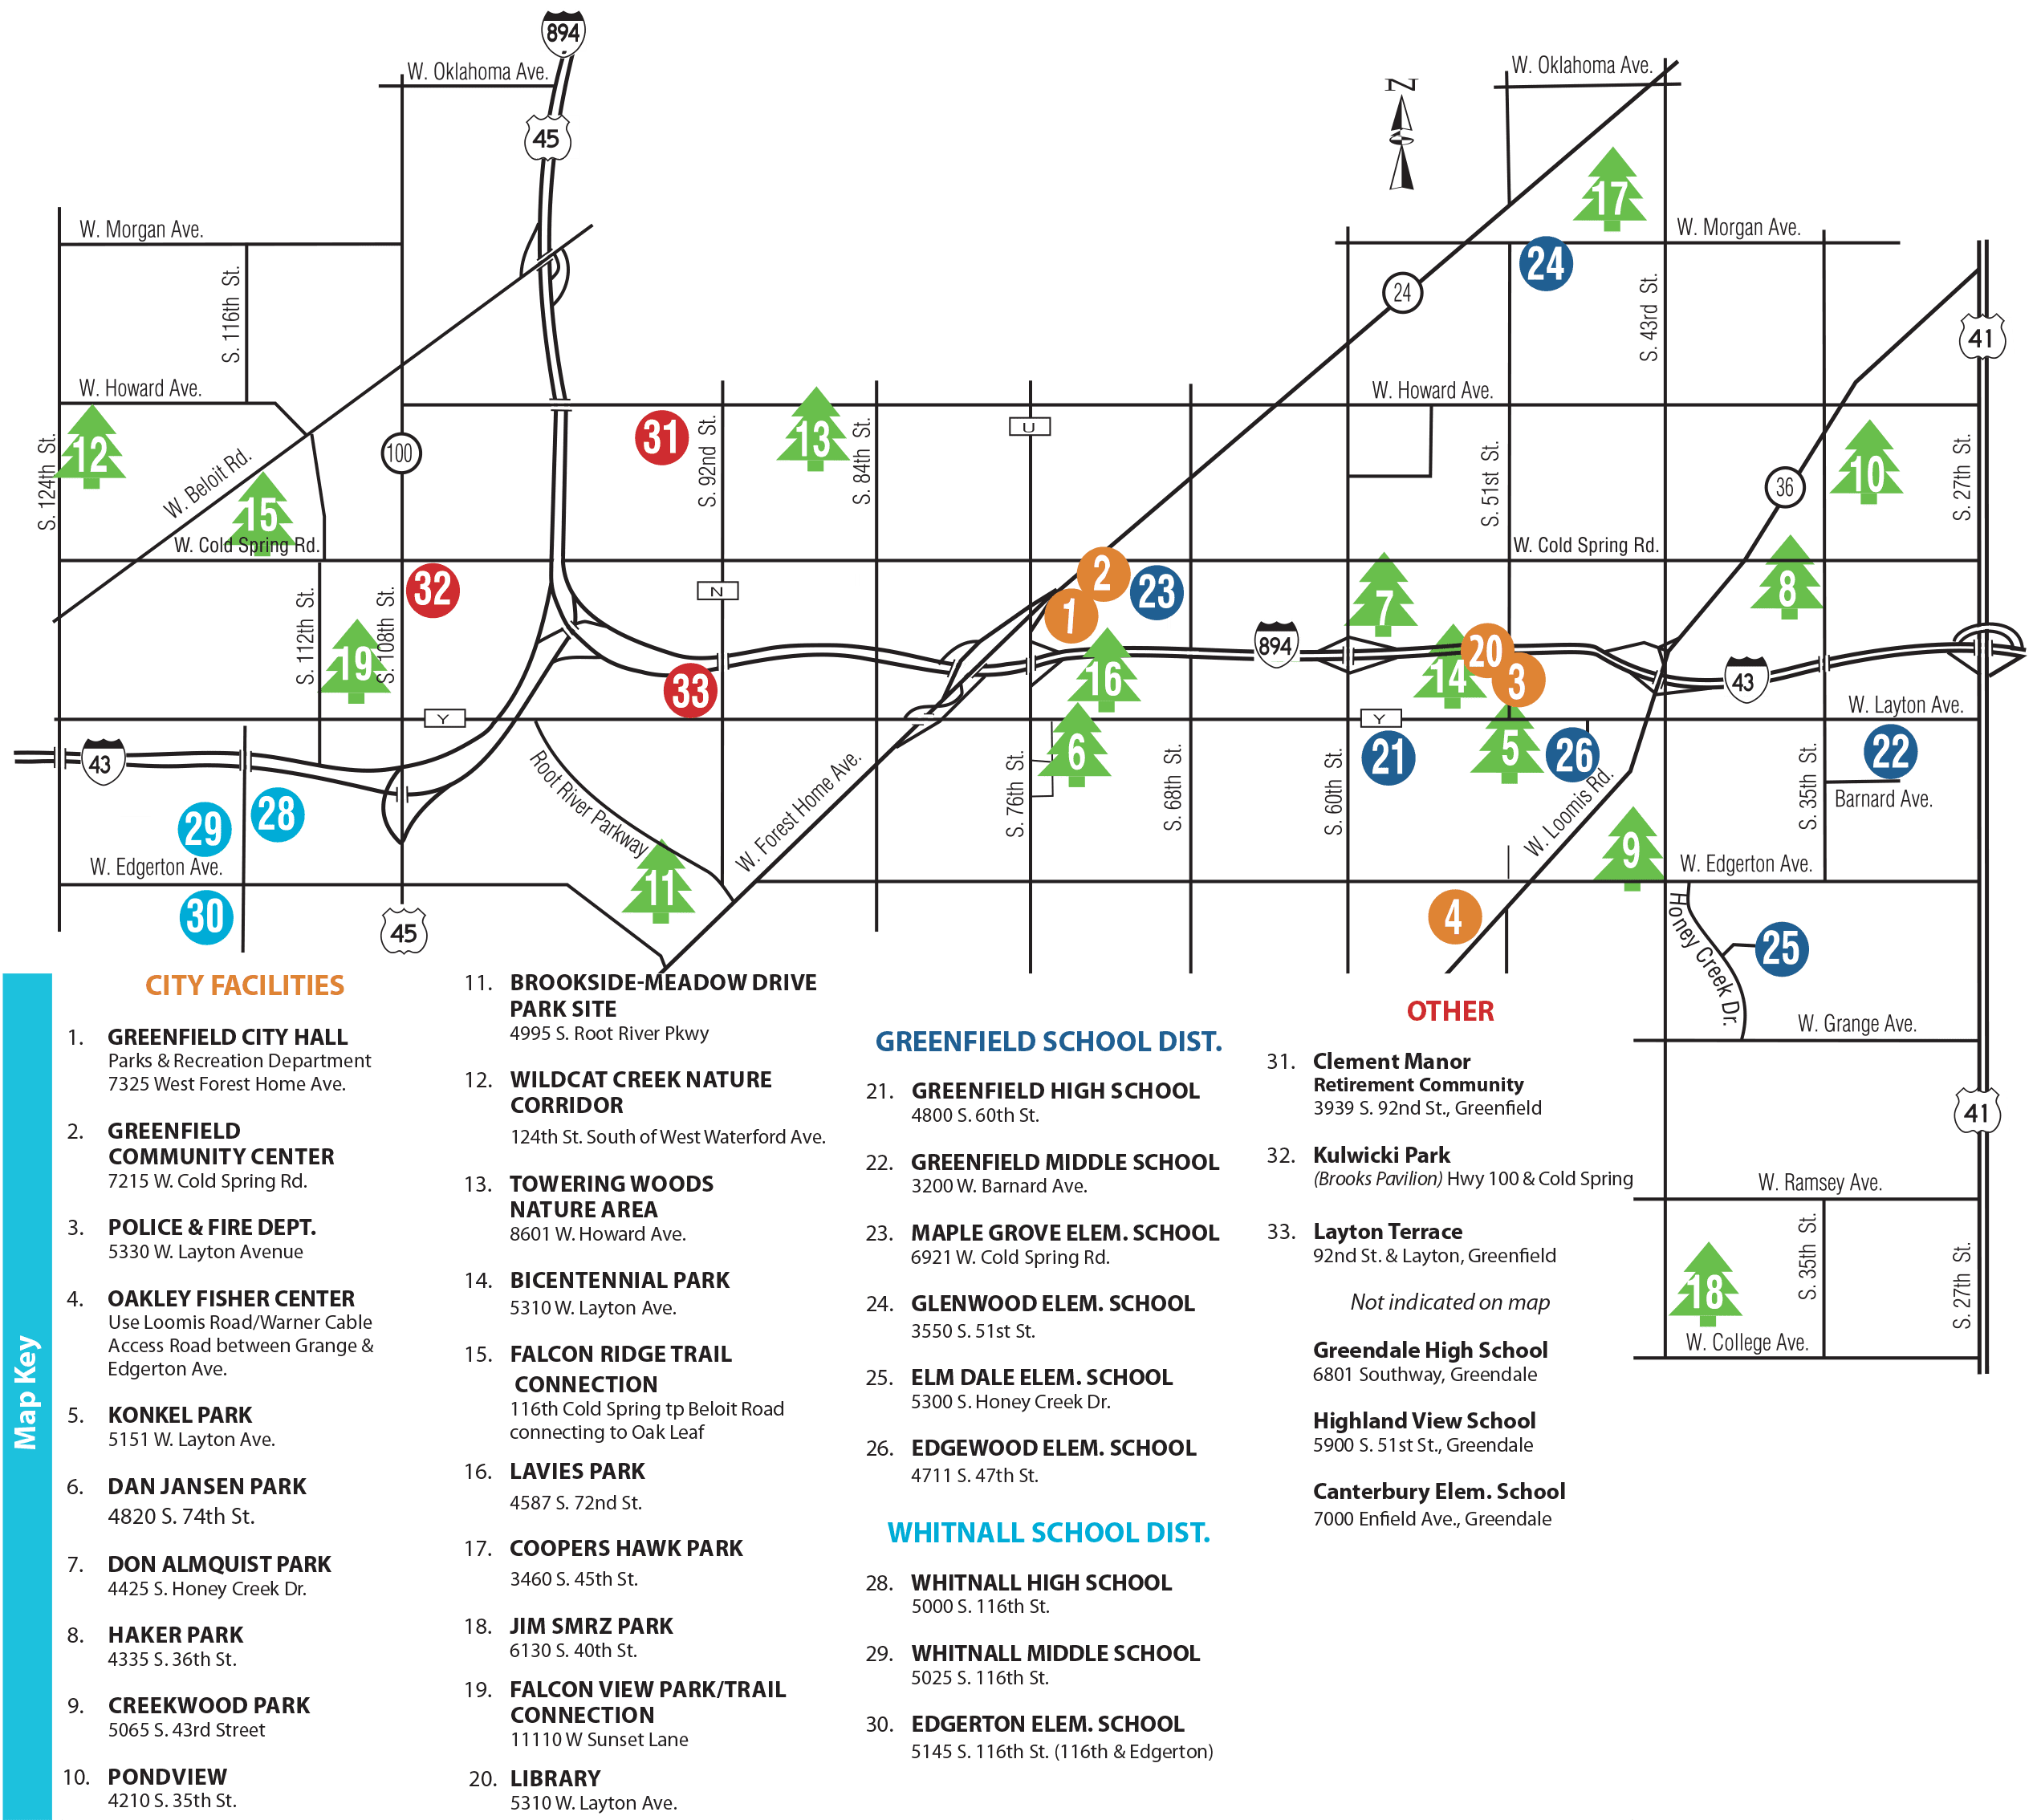 City of Greenfield Parks & Facilities Map